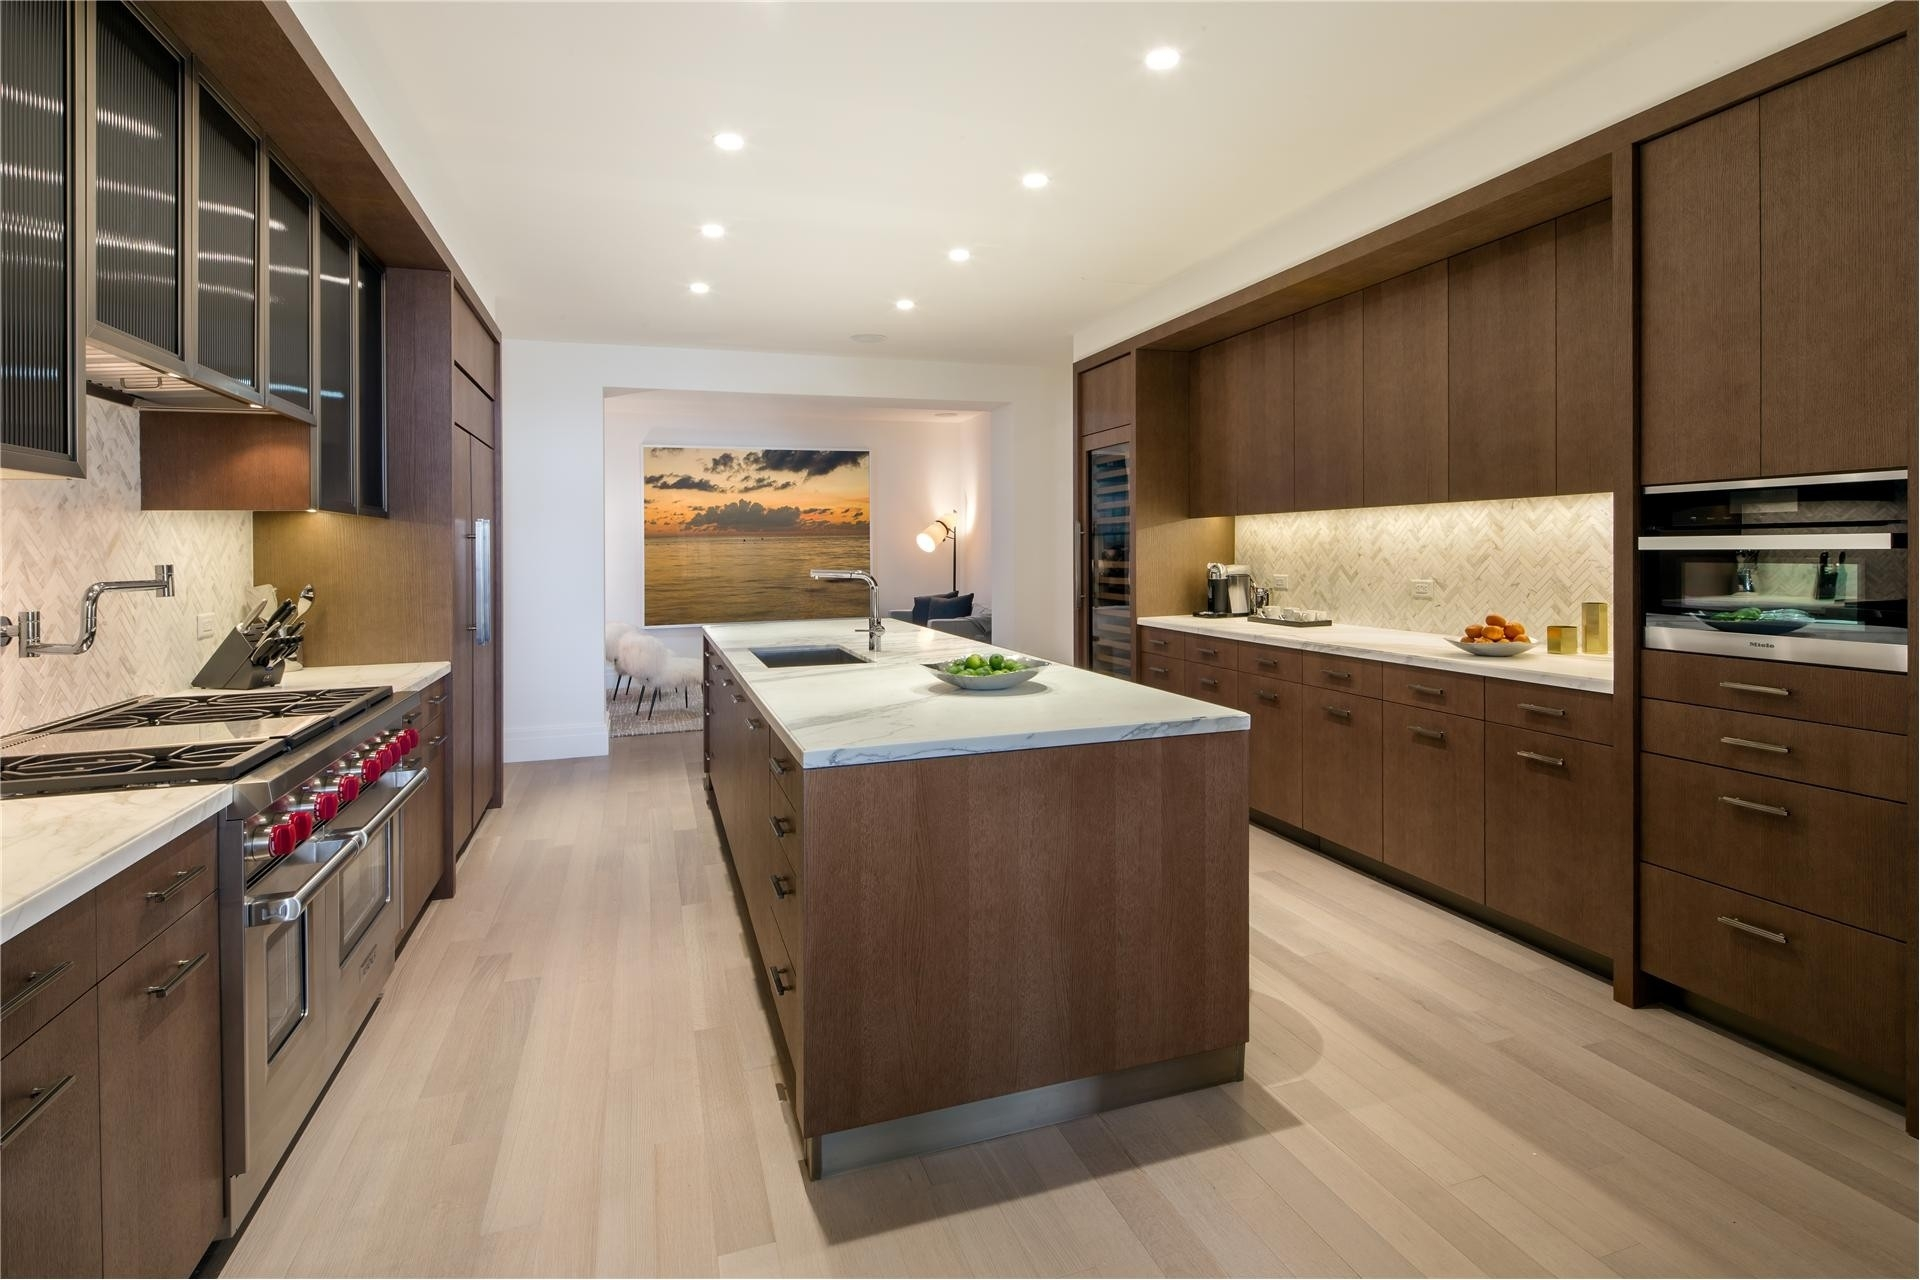 Condominium at One Hundred Barclay Tribeca, 100 Barclay St, 17R TriBeCa, New York